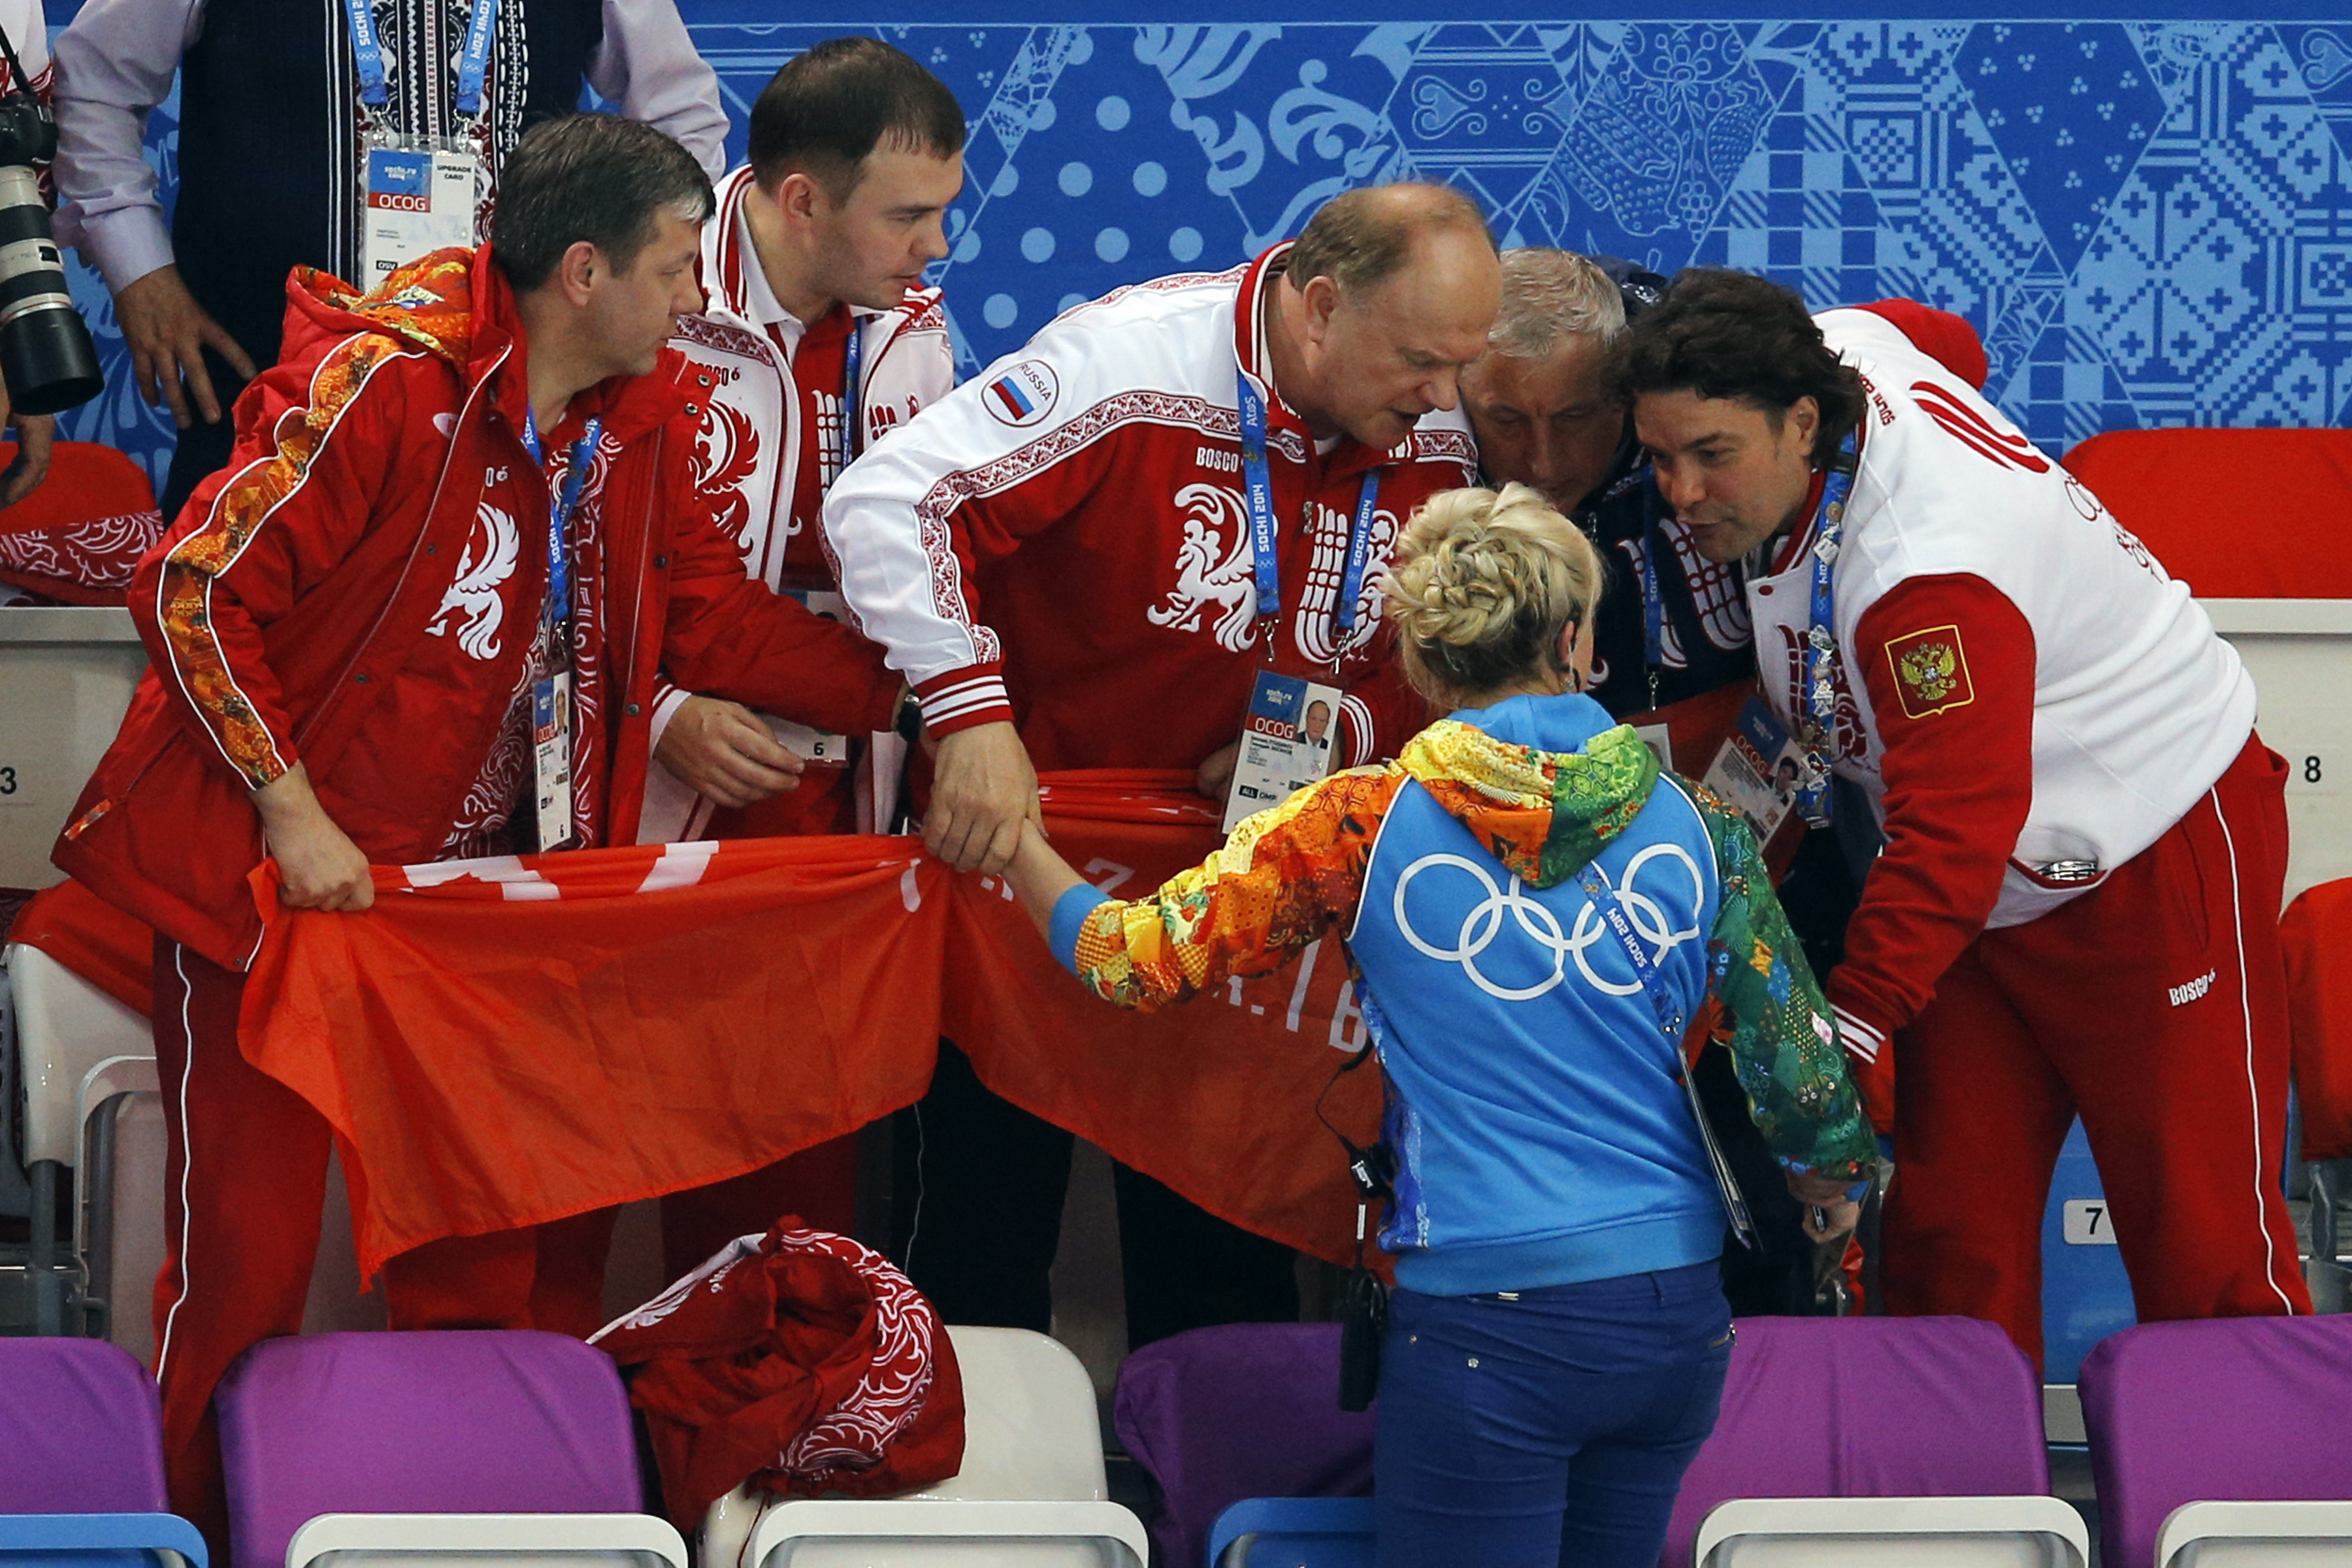 Russian Communist Party leader Gennady Zyuganov, center, and party spokesman Alexander Yushchenko, right, clutch the arms of the protocol manager at the Iceberg Skating Palace in Sochi, Russia, as she tries to stop them from displaying the Soviet Banner of Victory during a flower ceremony for the short track speedskating competition at the 2014 Winter Olympics on Friday, Feb. 21, 2014. The banner is a replica of the flag raised by Soviet soldiers in Berlin in 1945, in victory over Nazi Germany. Communist lawmakers and members of parliament Yuri Afonin, second left, and Nikolai Kharitonov, second right, join the argument. The International Olympic Committee forbids the display of political banners at Olympic venues. (AP Photo/Vadim Ghirda)